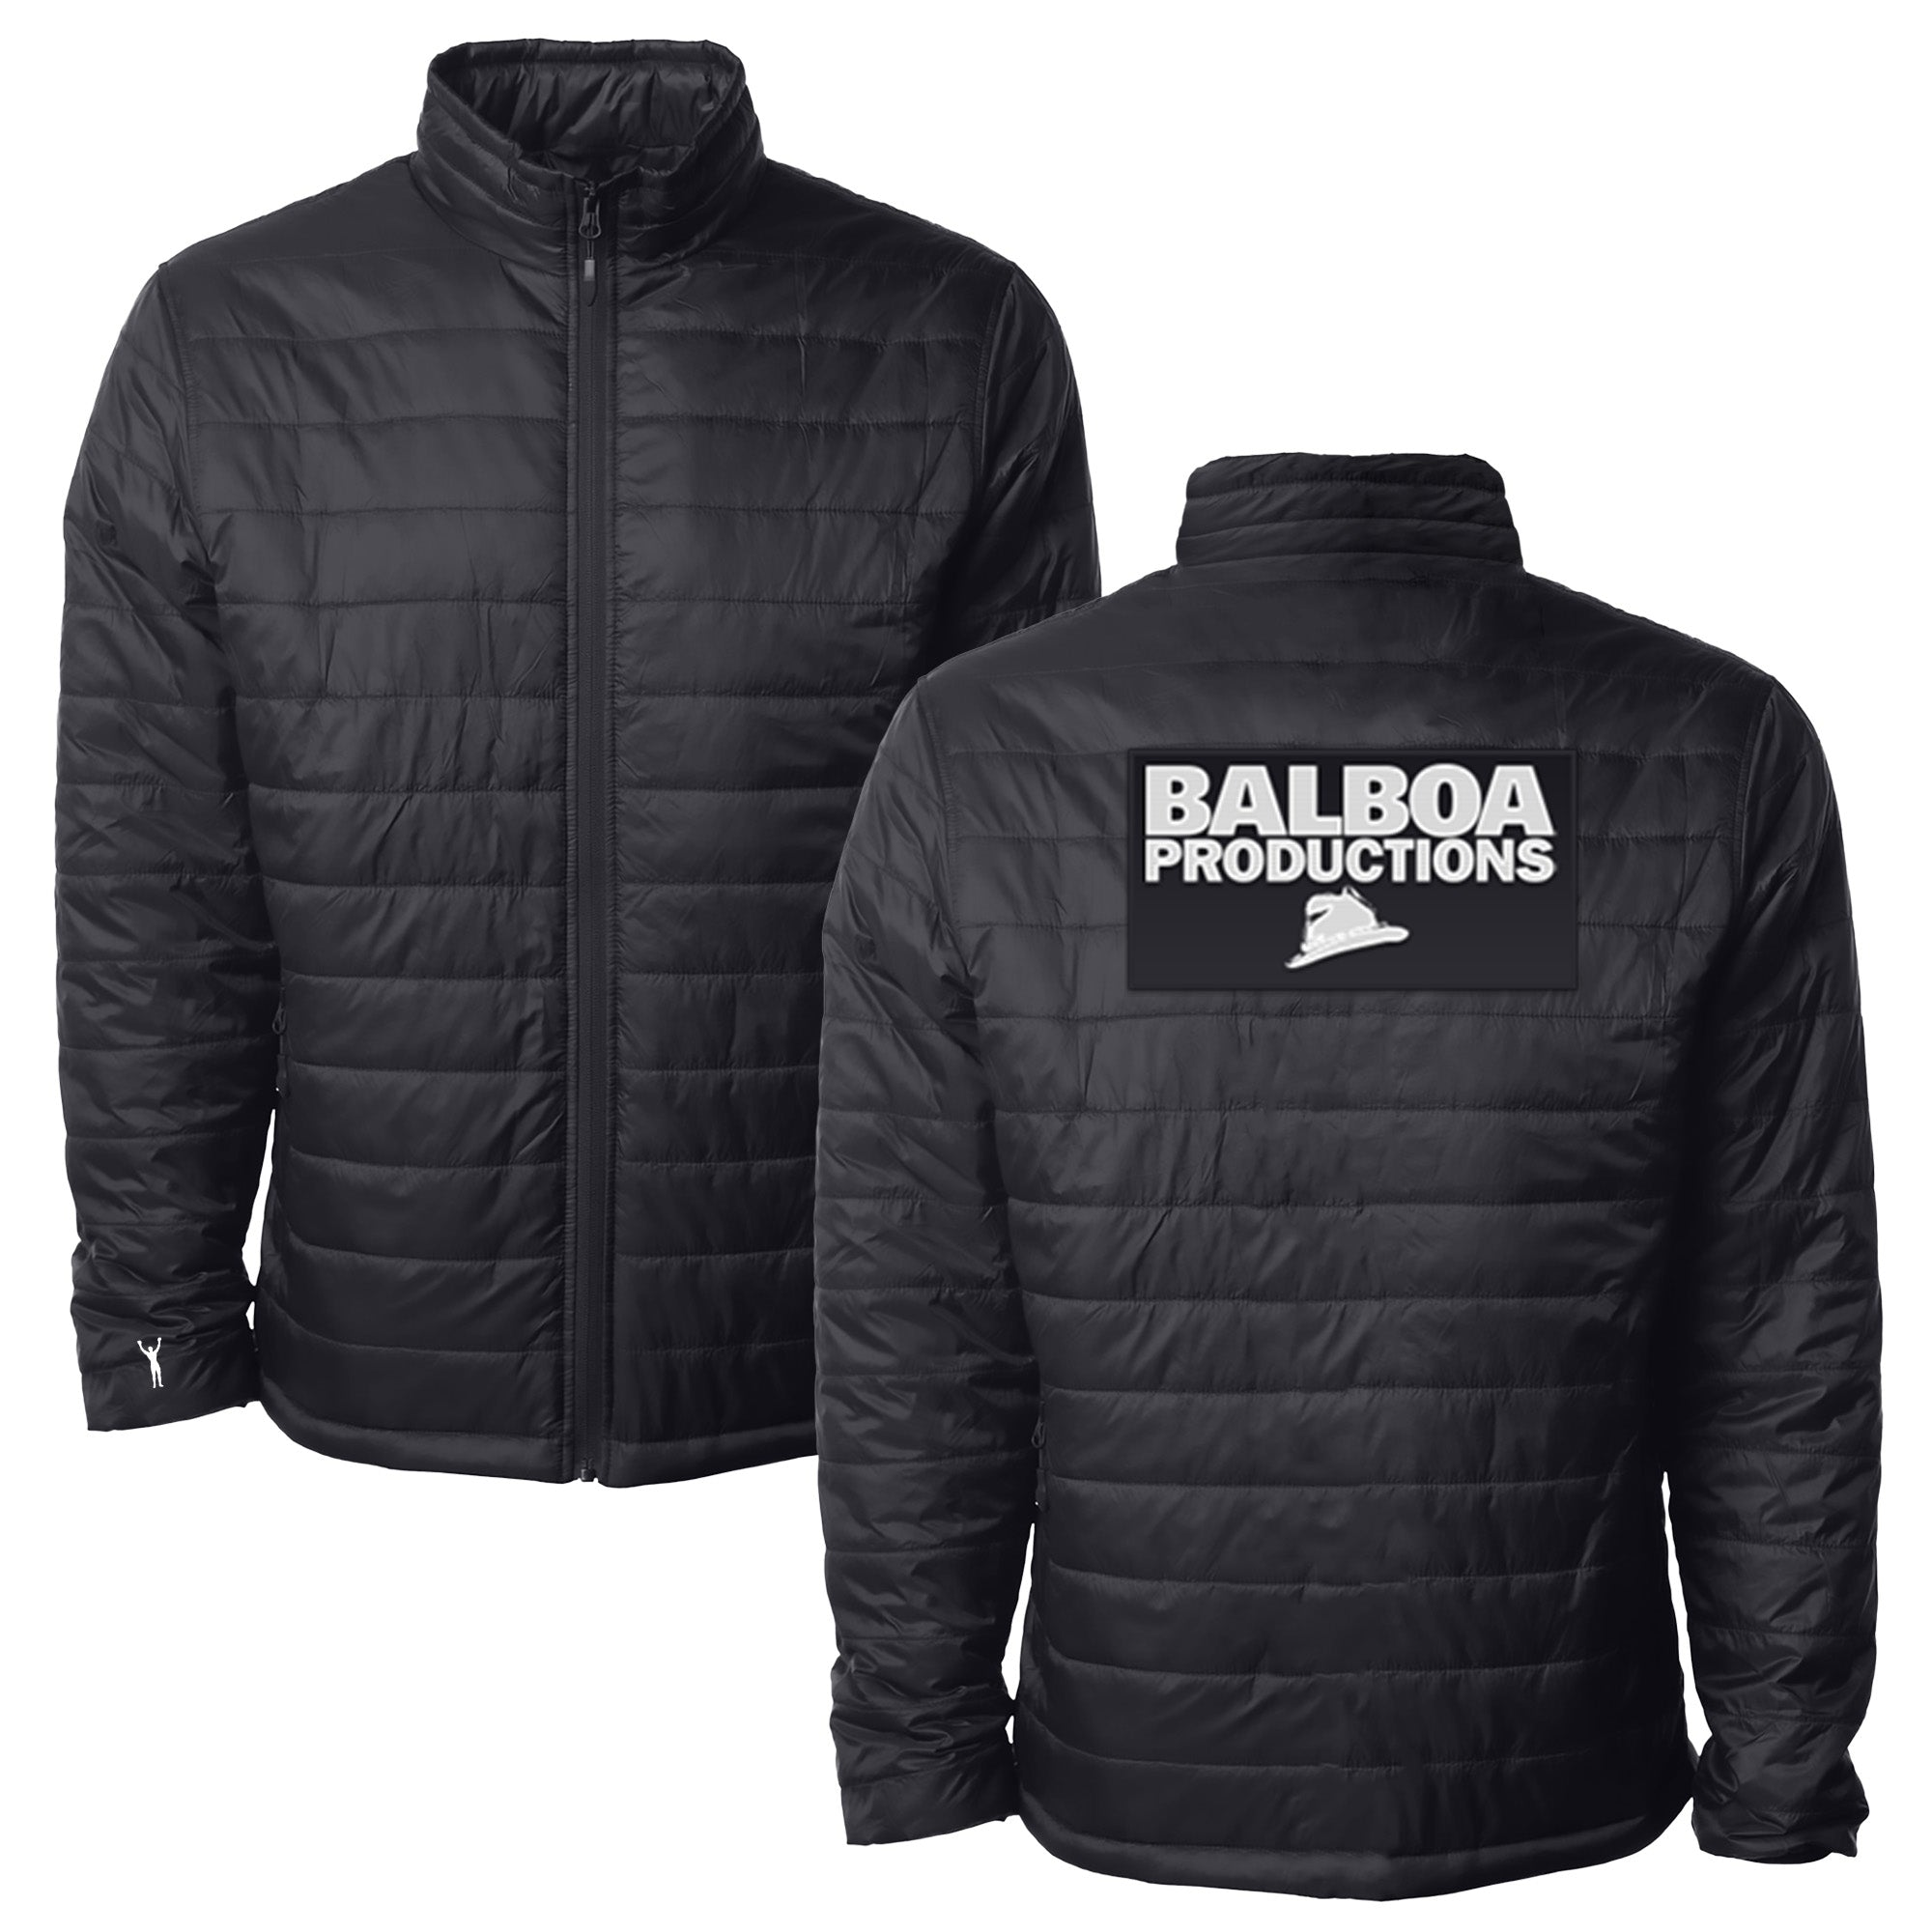 BALBOA Productions Quilted Jacket